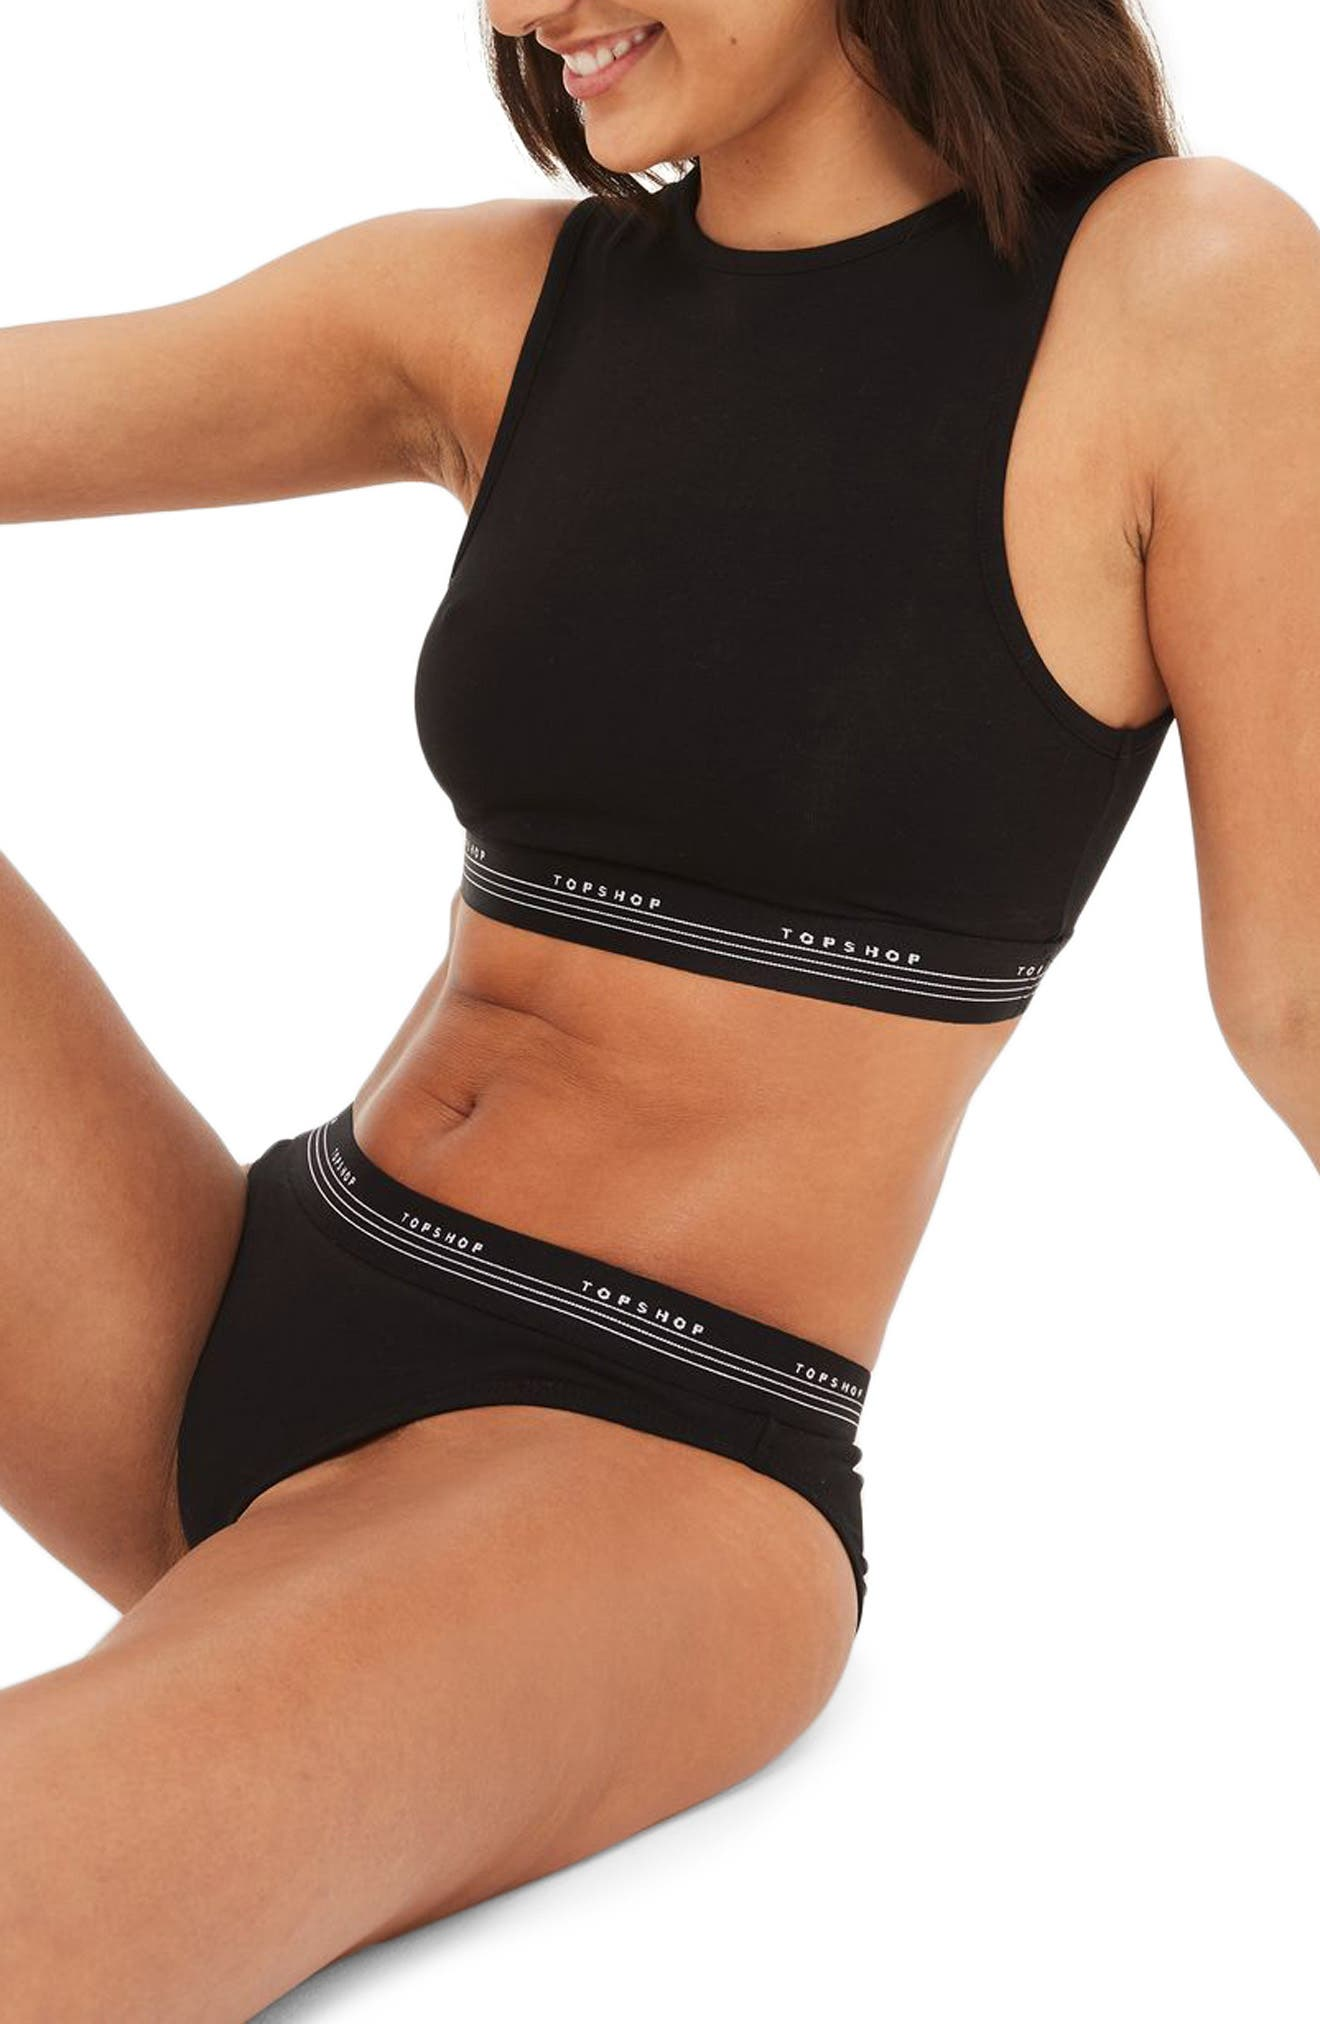 TOPSHOP,                             Sporty Panties,                             Alternate thumbnail 4, color,                             001